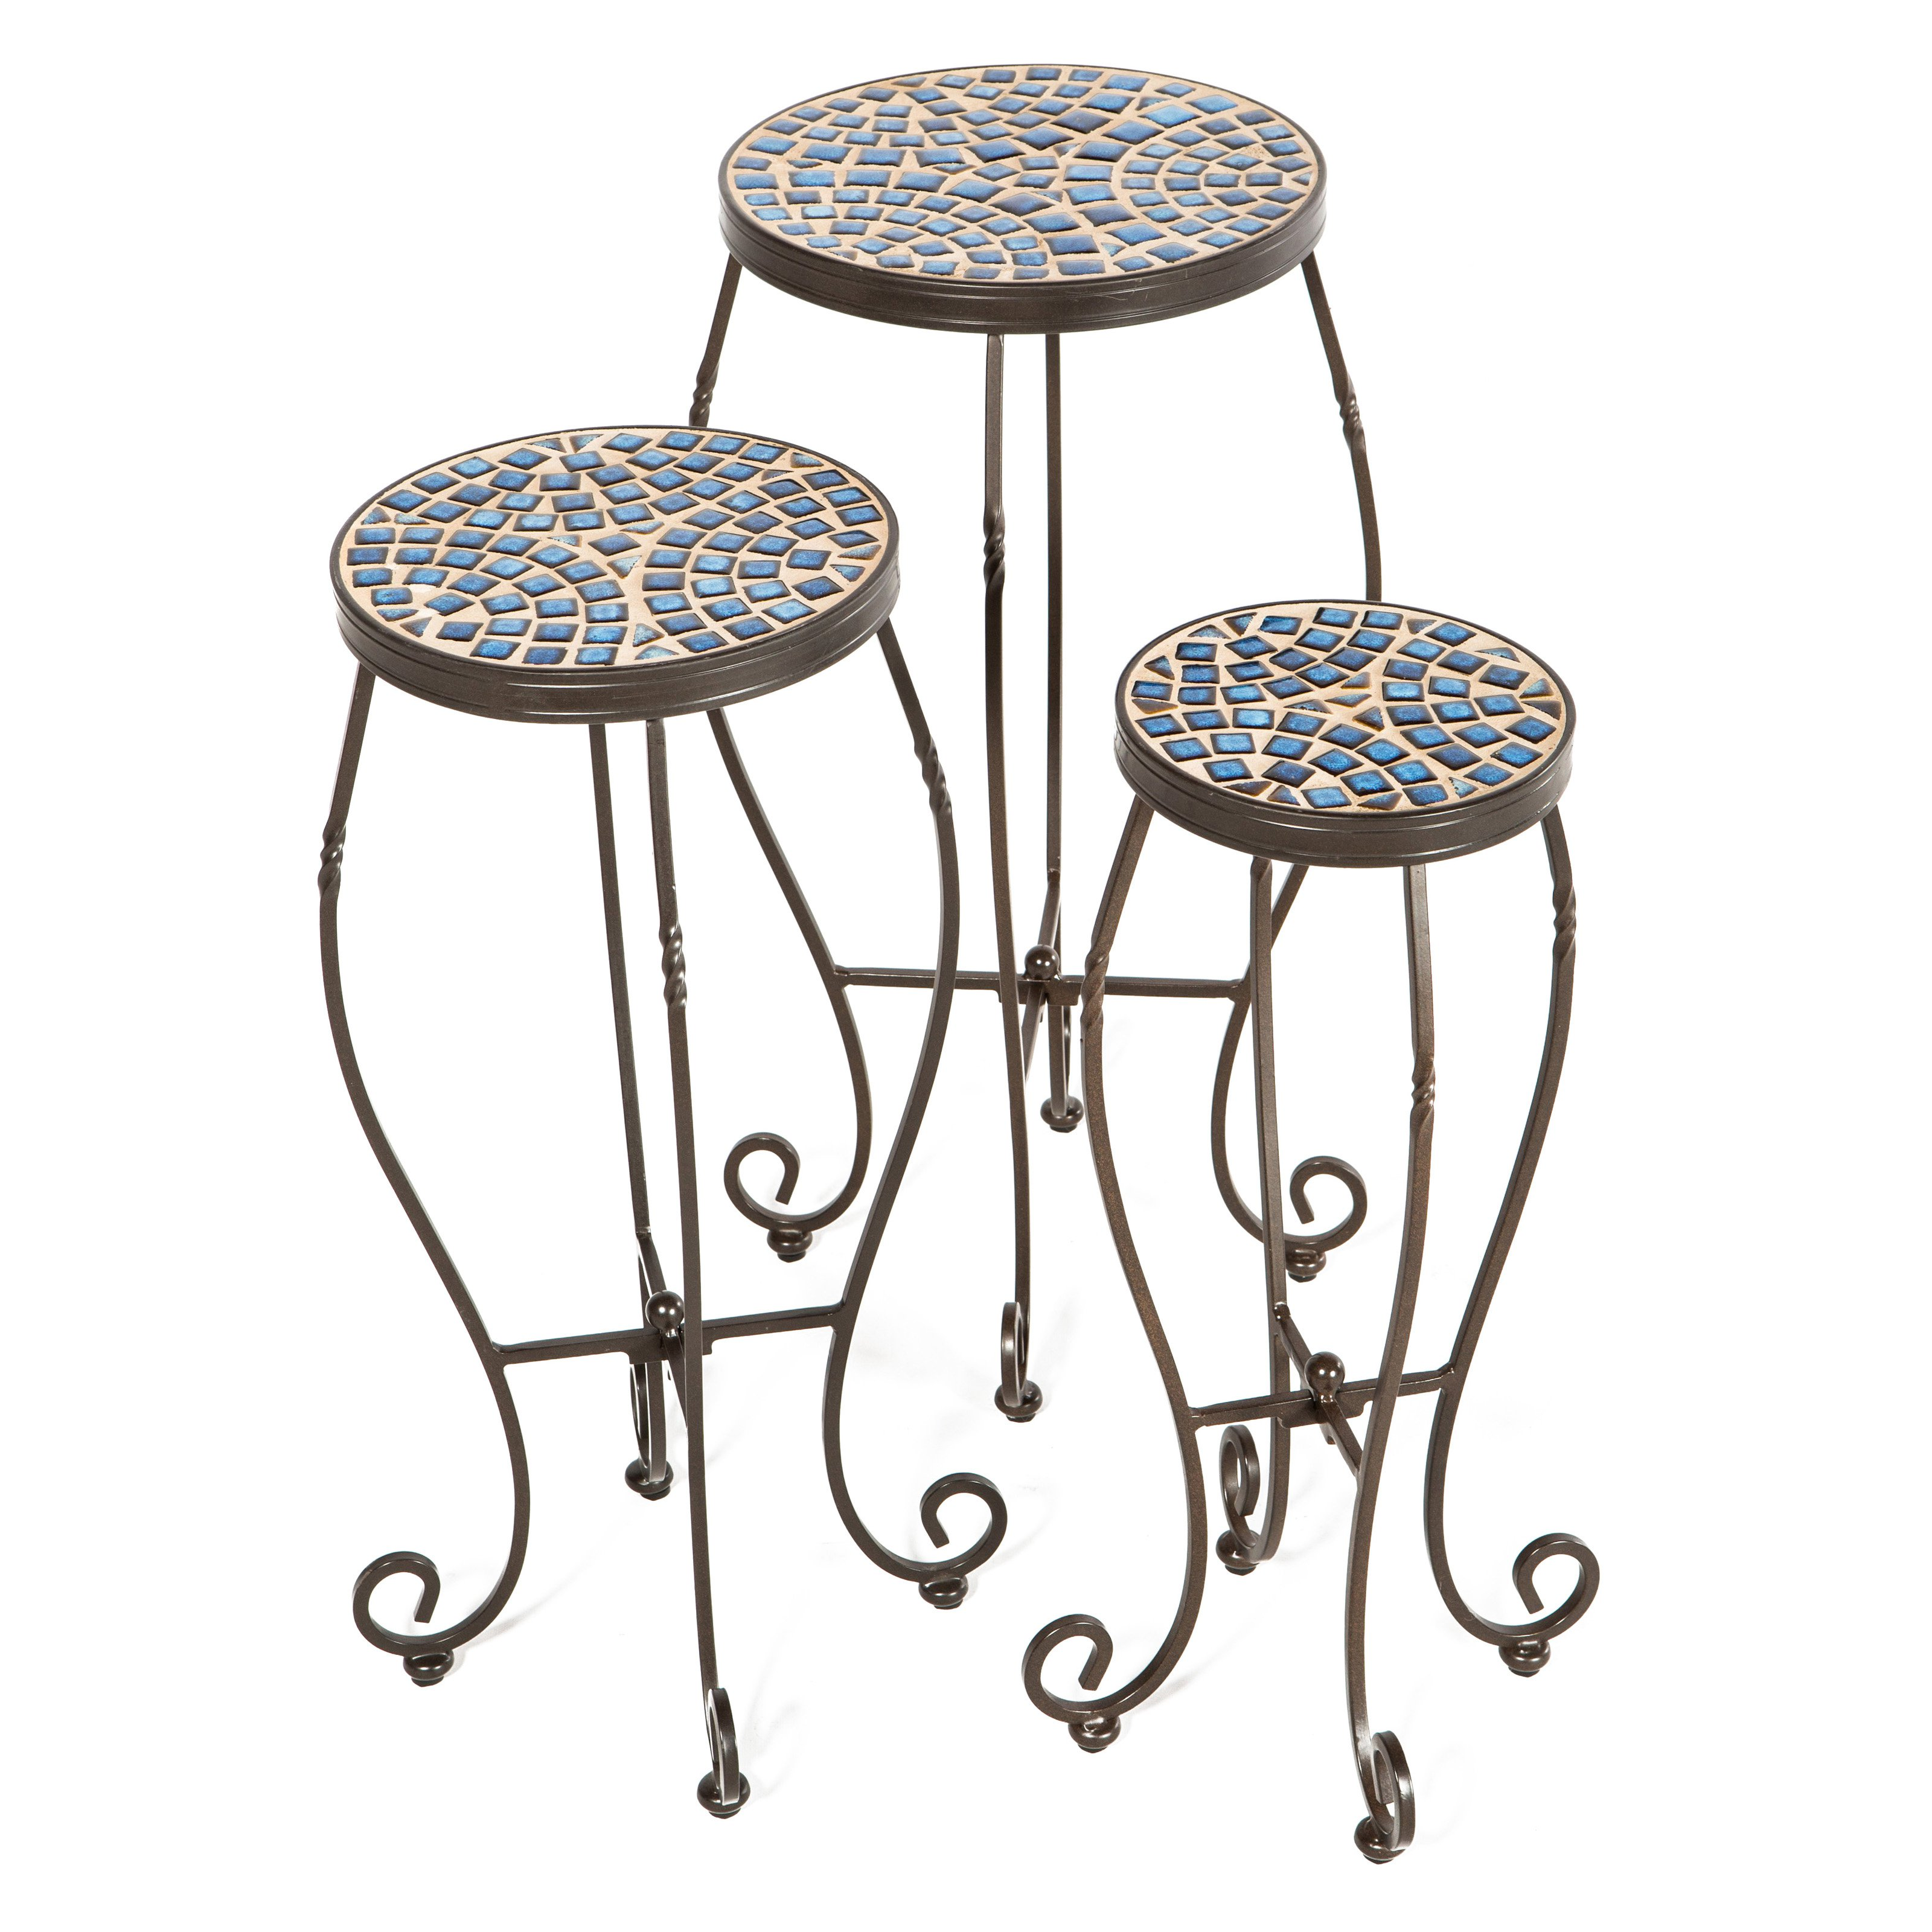 Tremiti Mosaic Plant Stands Set of 3 by Plant Stands